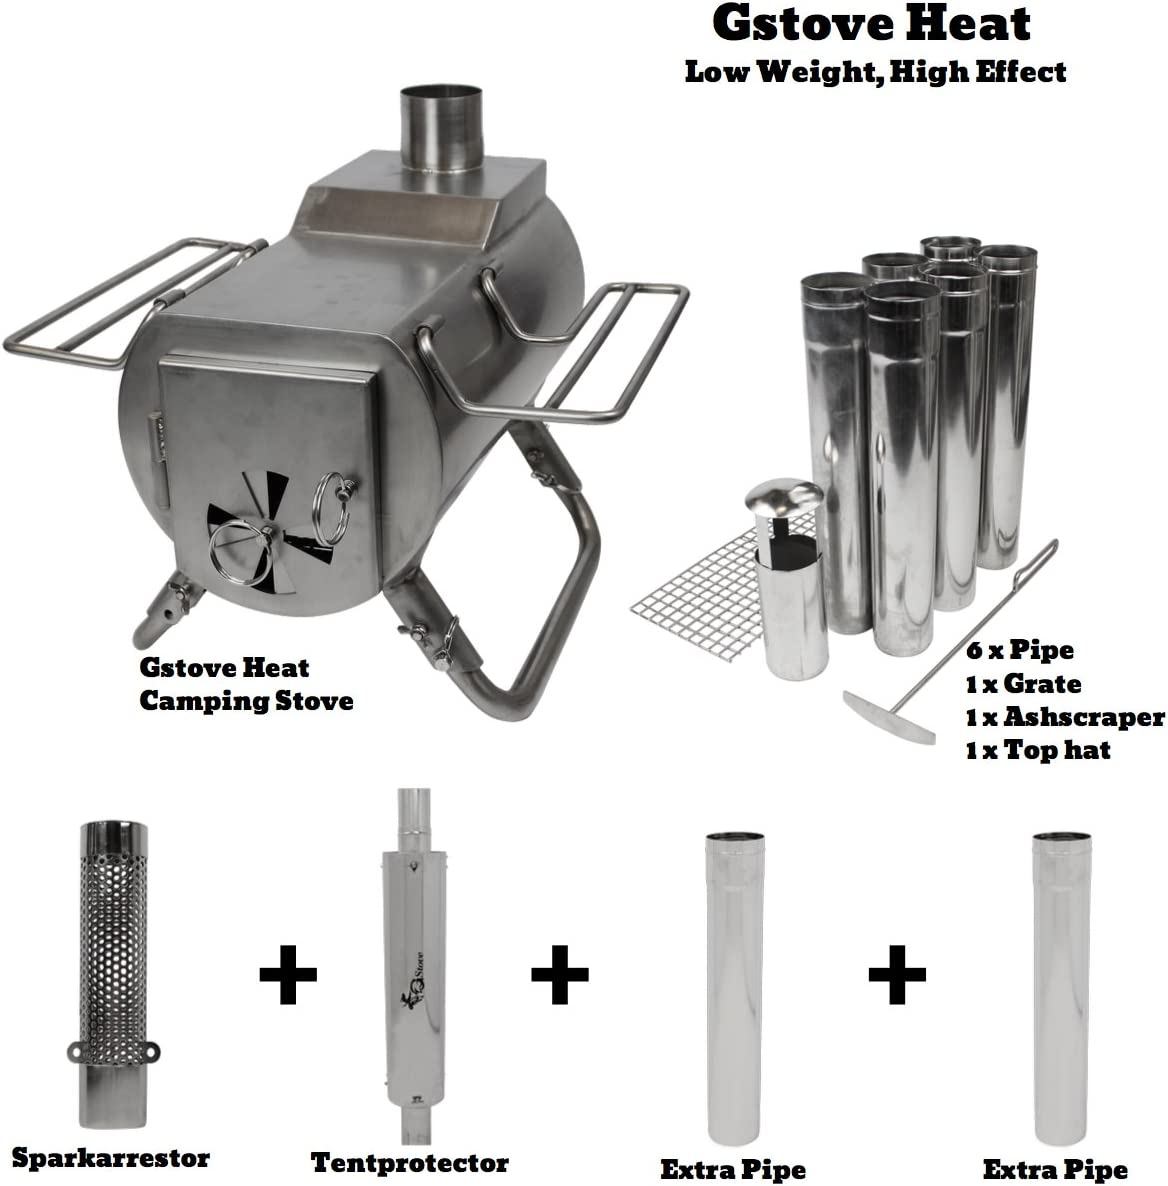 This is an image of a tent stove set showing one unit of stove, and various accessories.